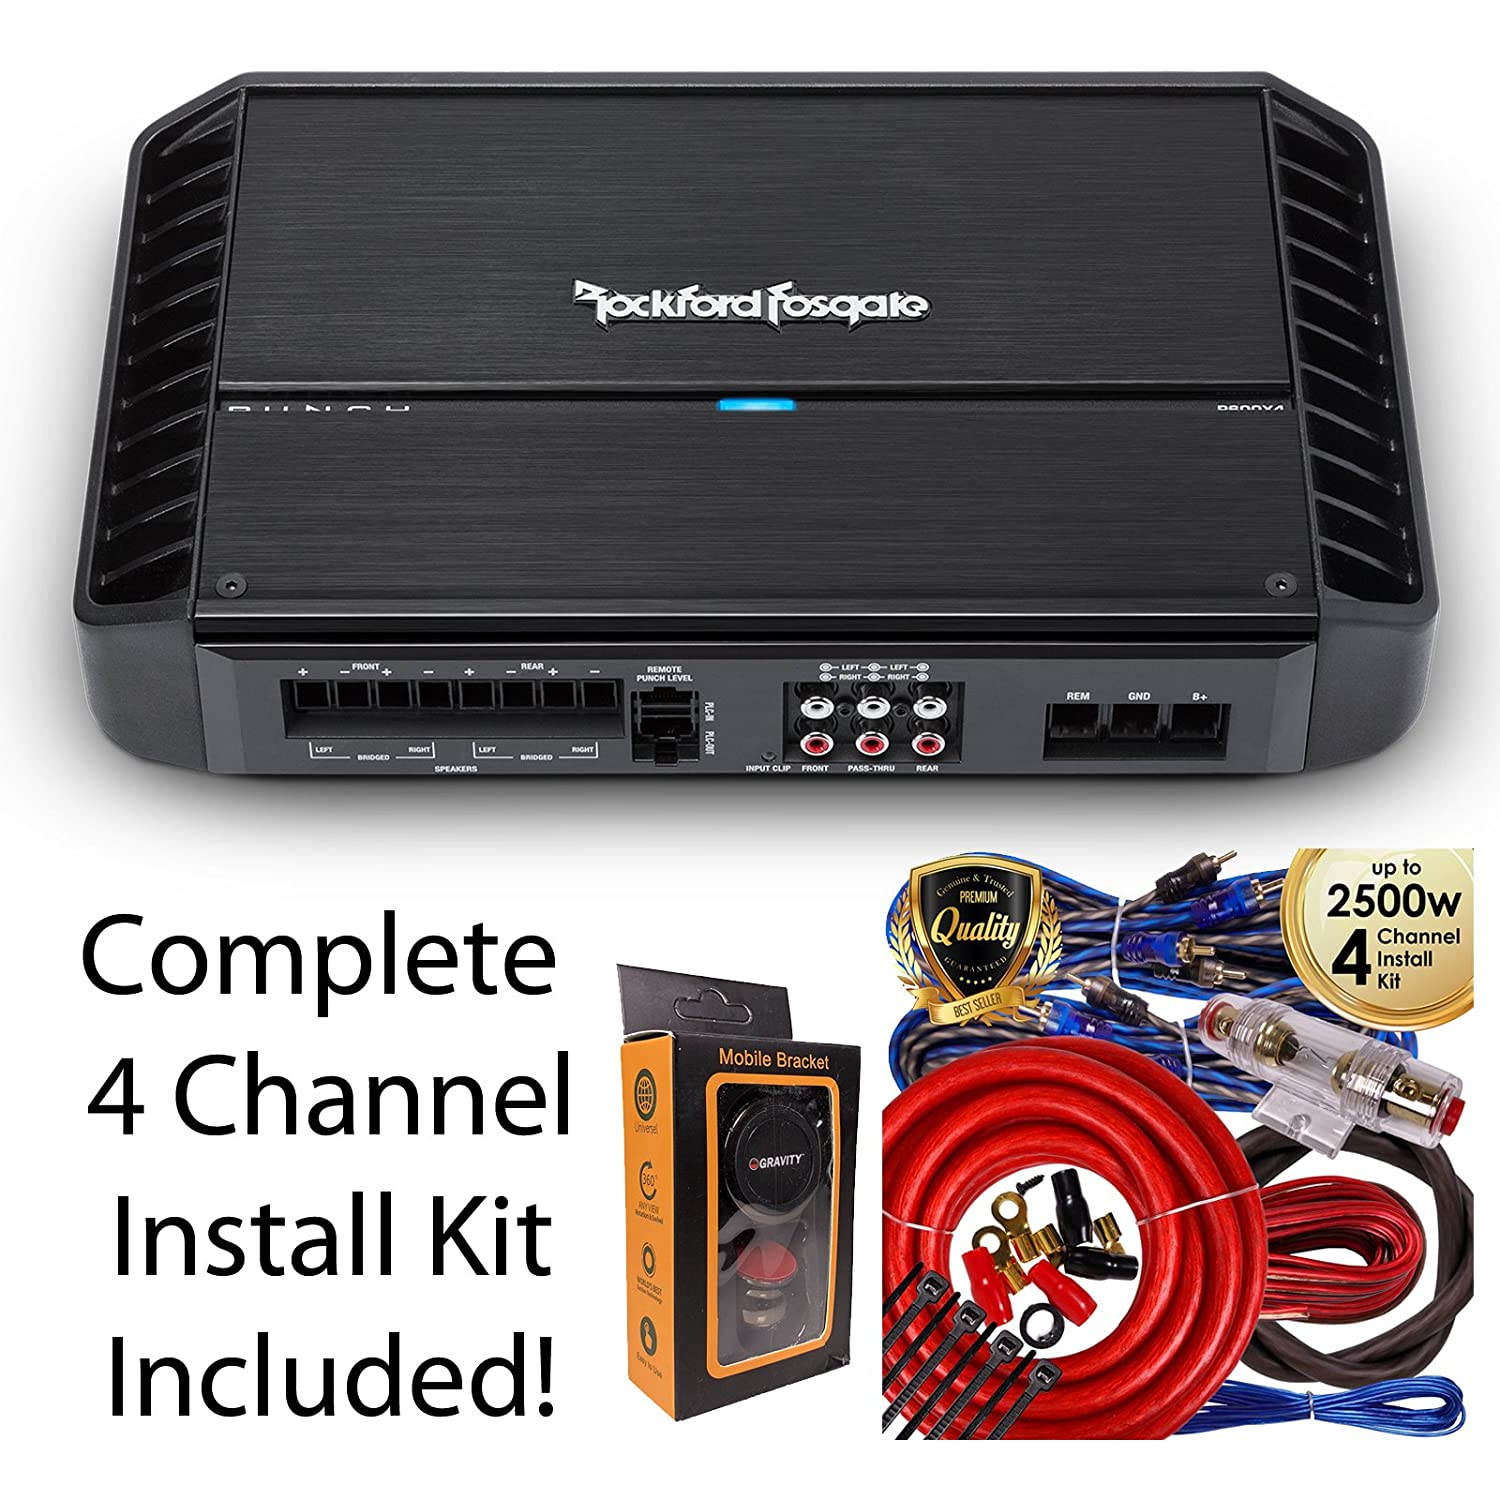 Best 4 Channel amp for sound and quality